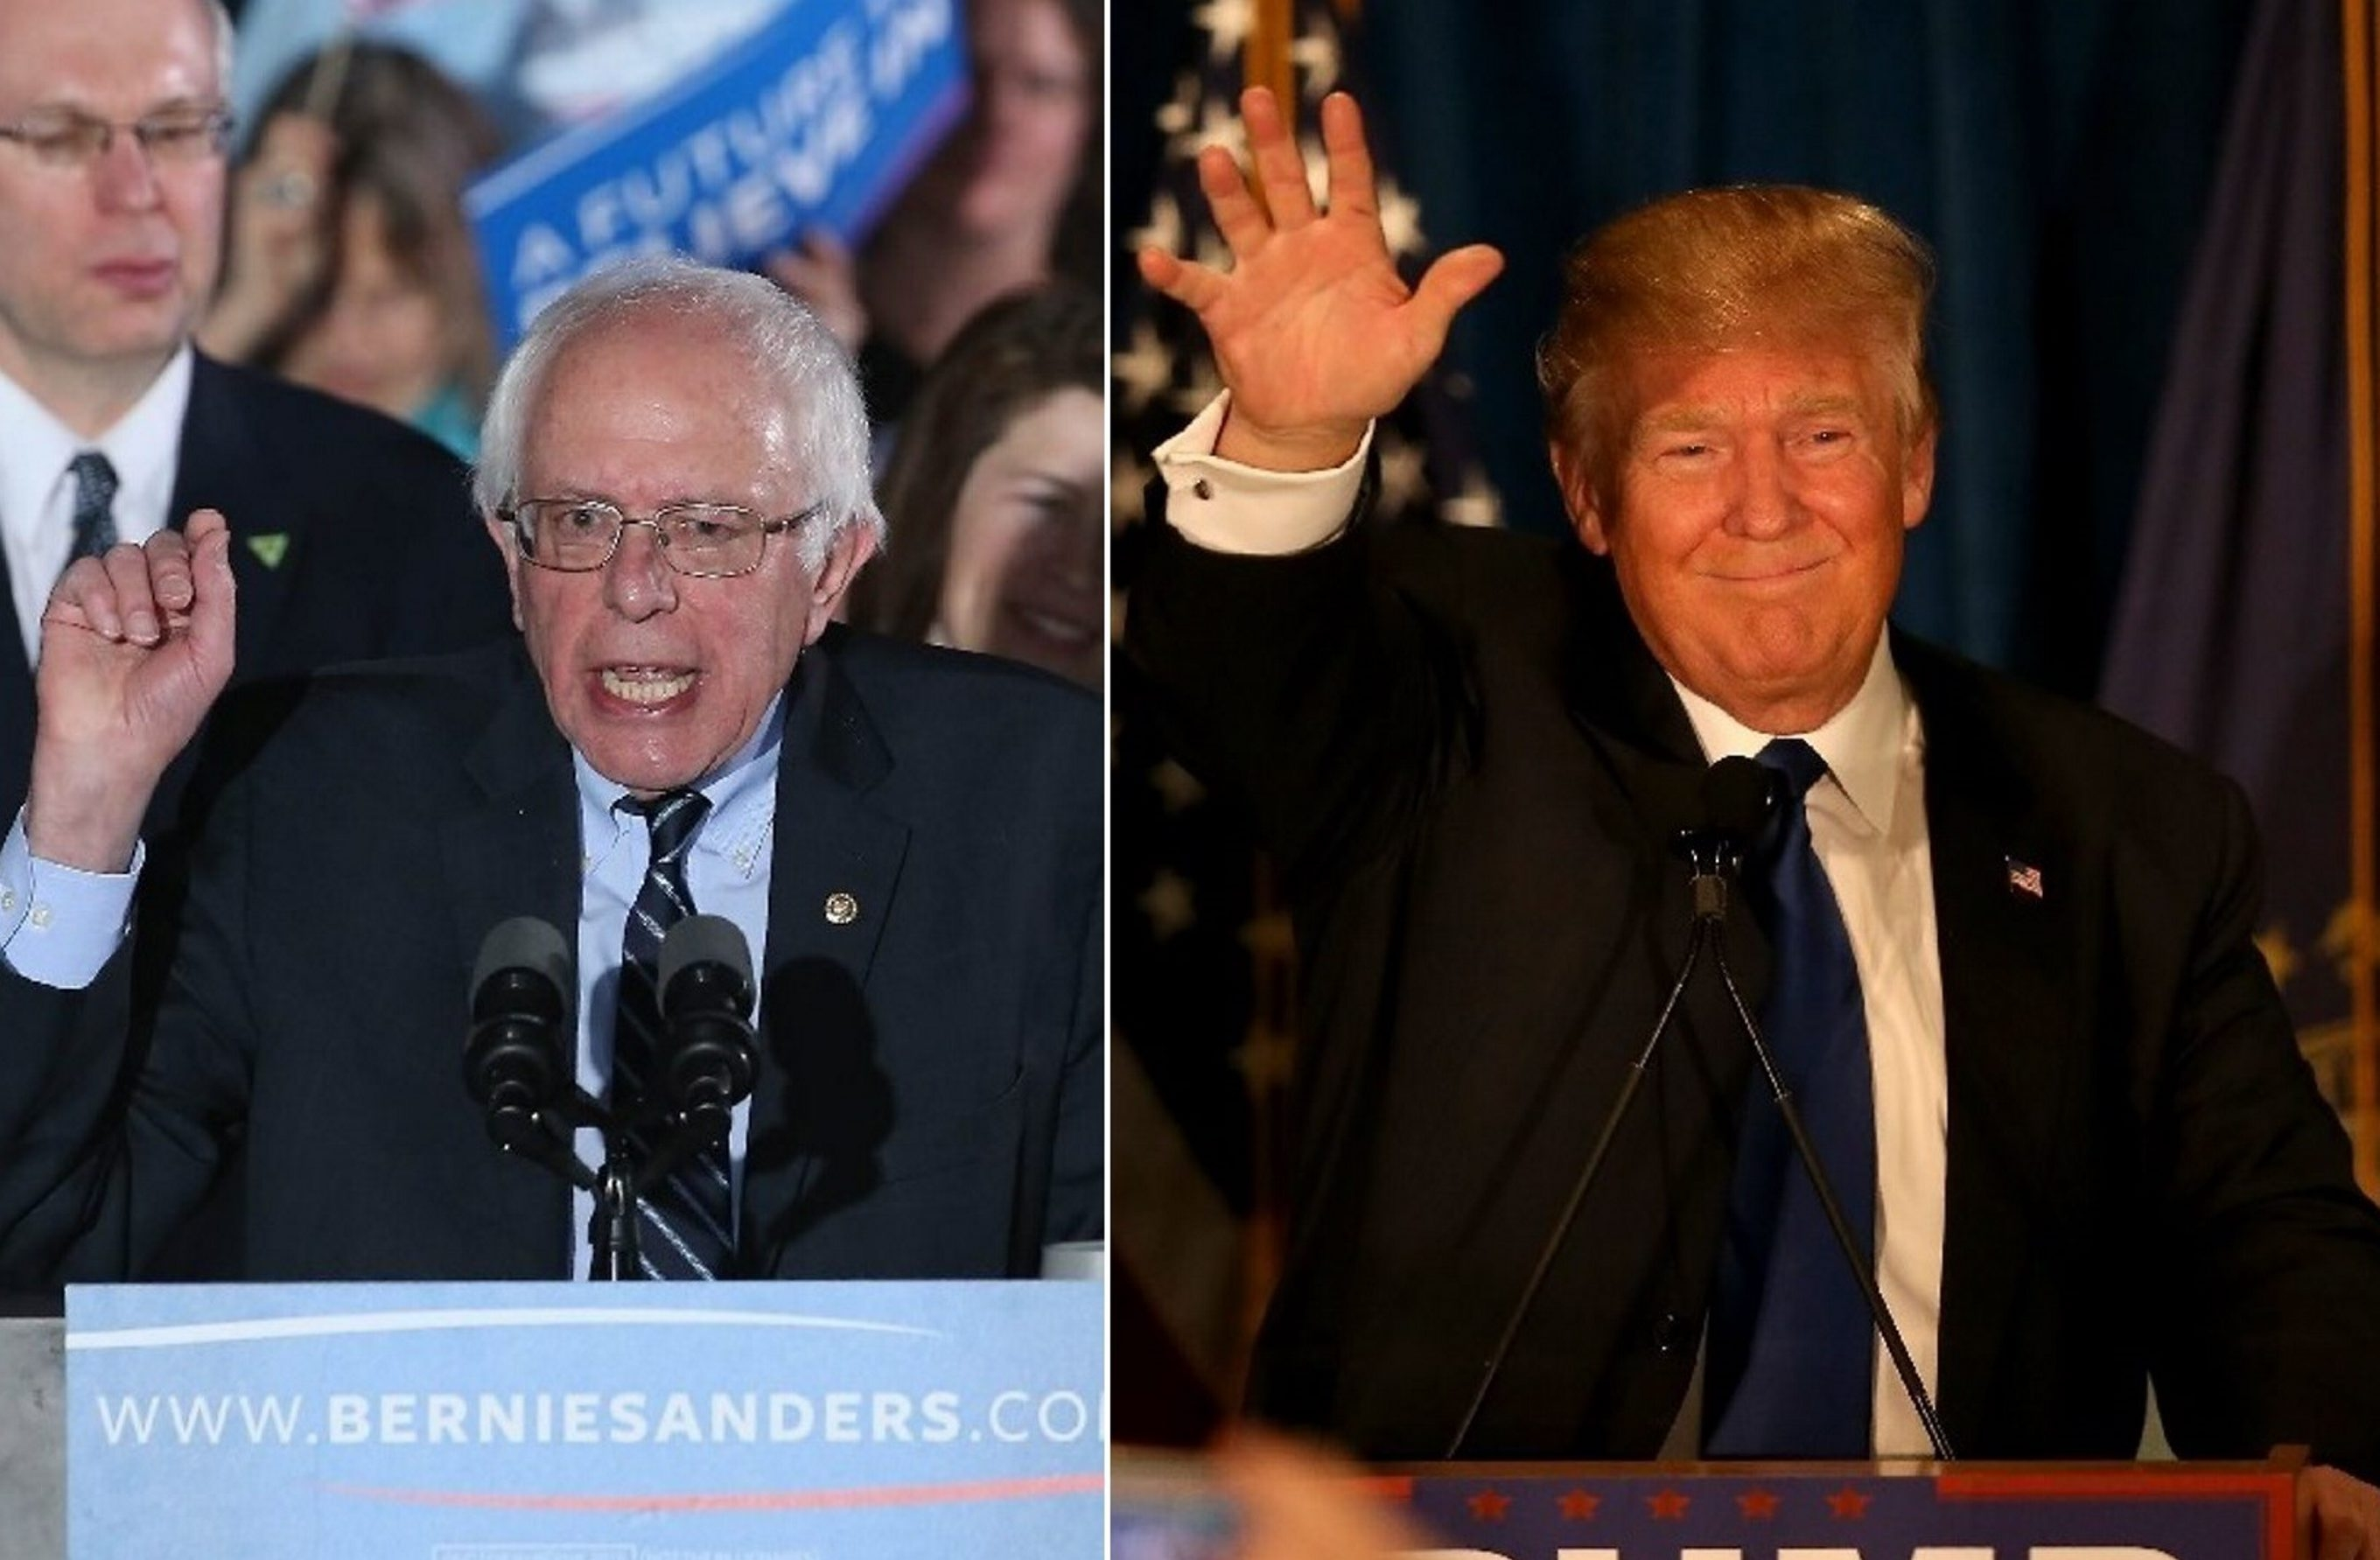 """Bernie Sanders, left, tallied 32 percent of Erie County Facebook """"likes,"""" while Donald Trump, right, got 28 percent. Democrats and Republicans vote in presidential primaries in New York State on April 19."""